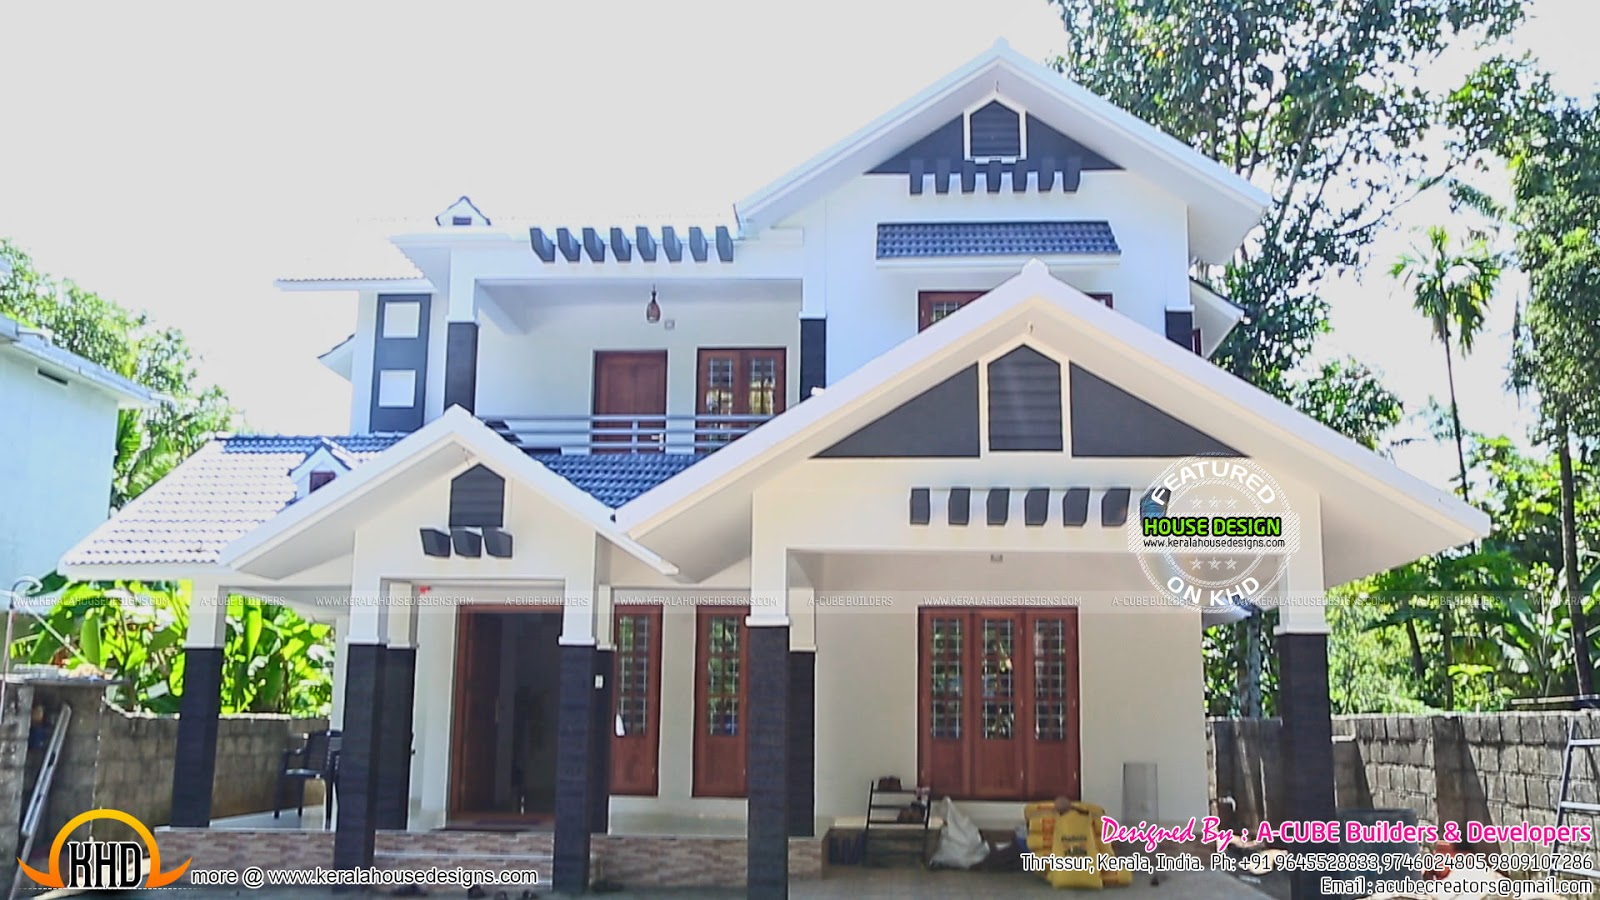 New house plans for 2016 starts here kerala home design for Kerala new house plans